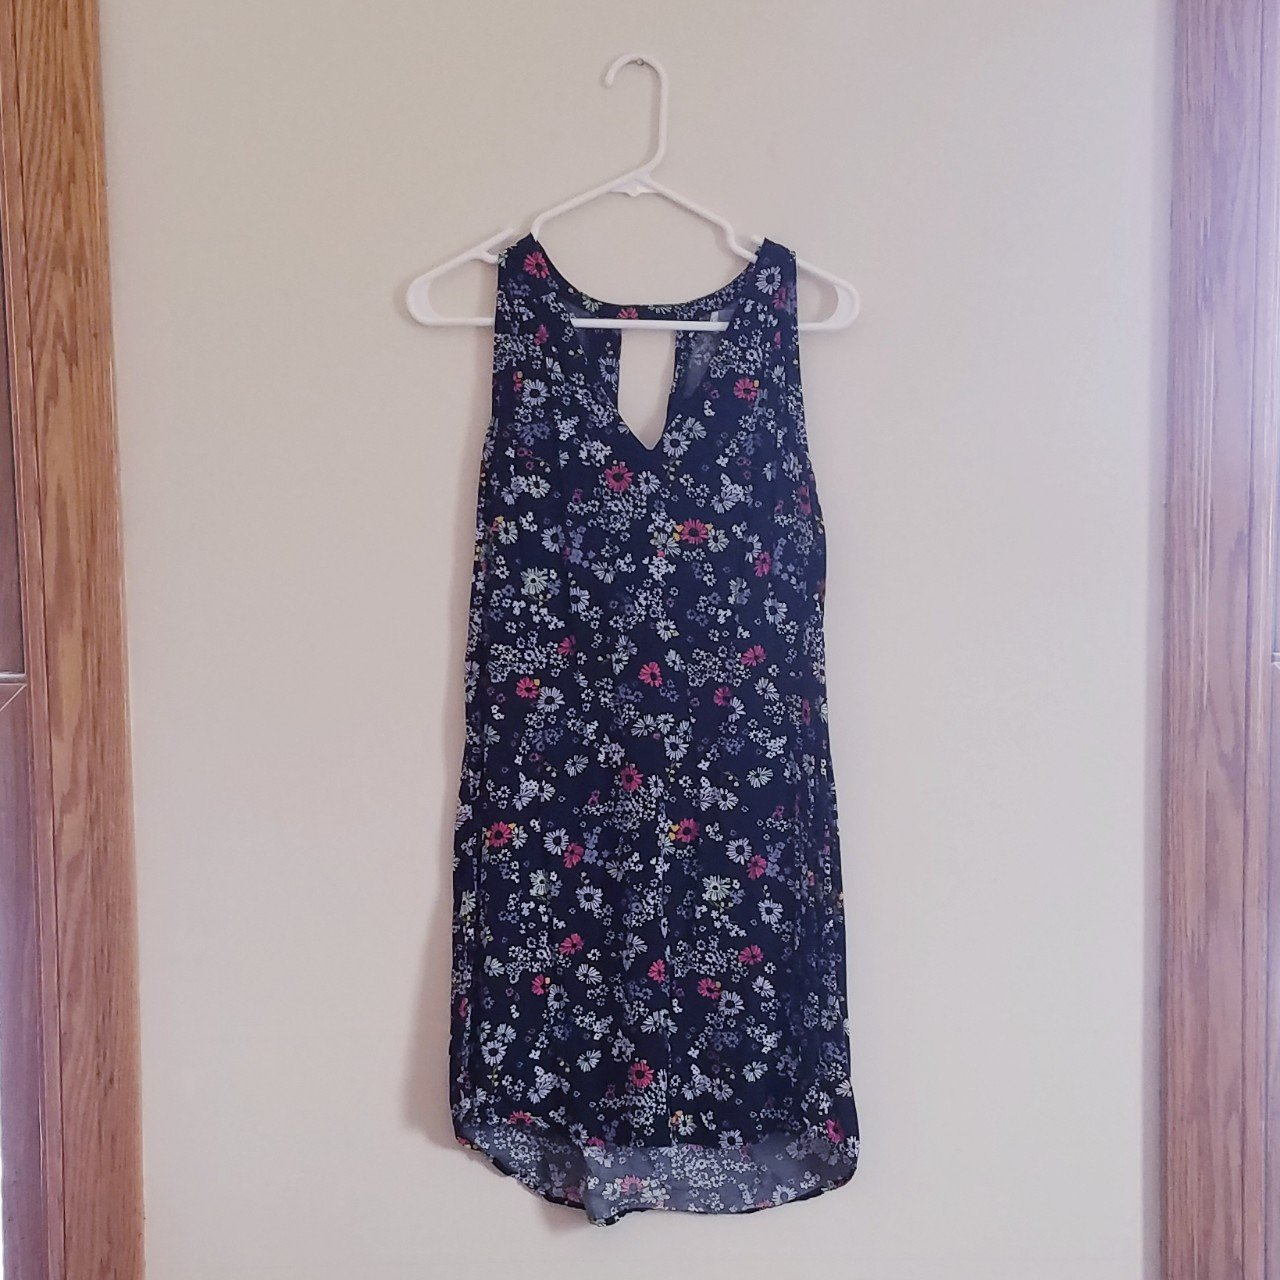 adca2f1bc0613 2 months ago. edinboro erie county united states. old navy floral